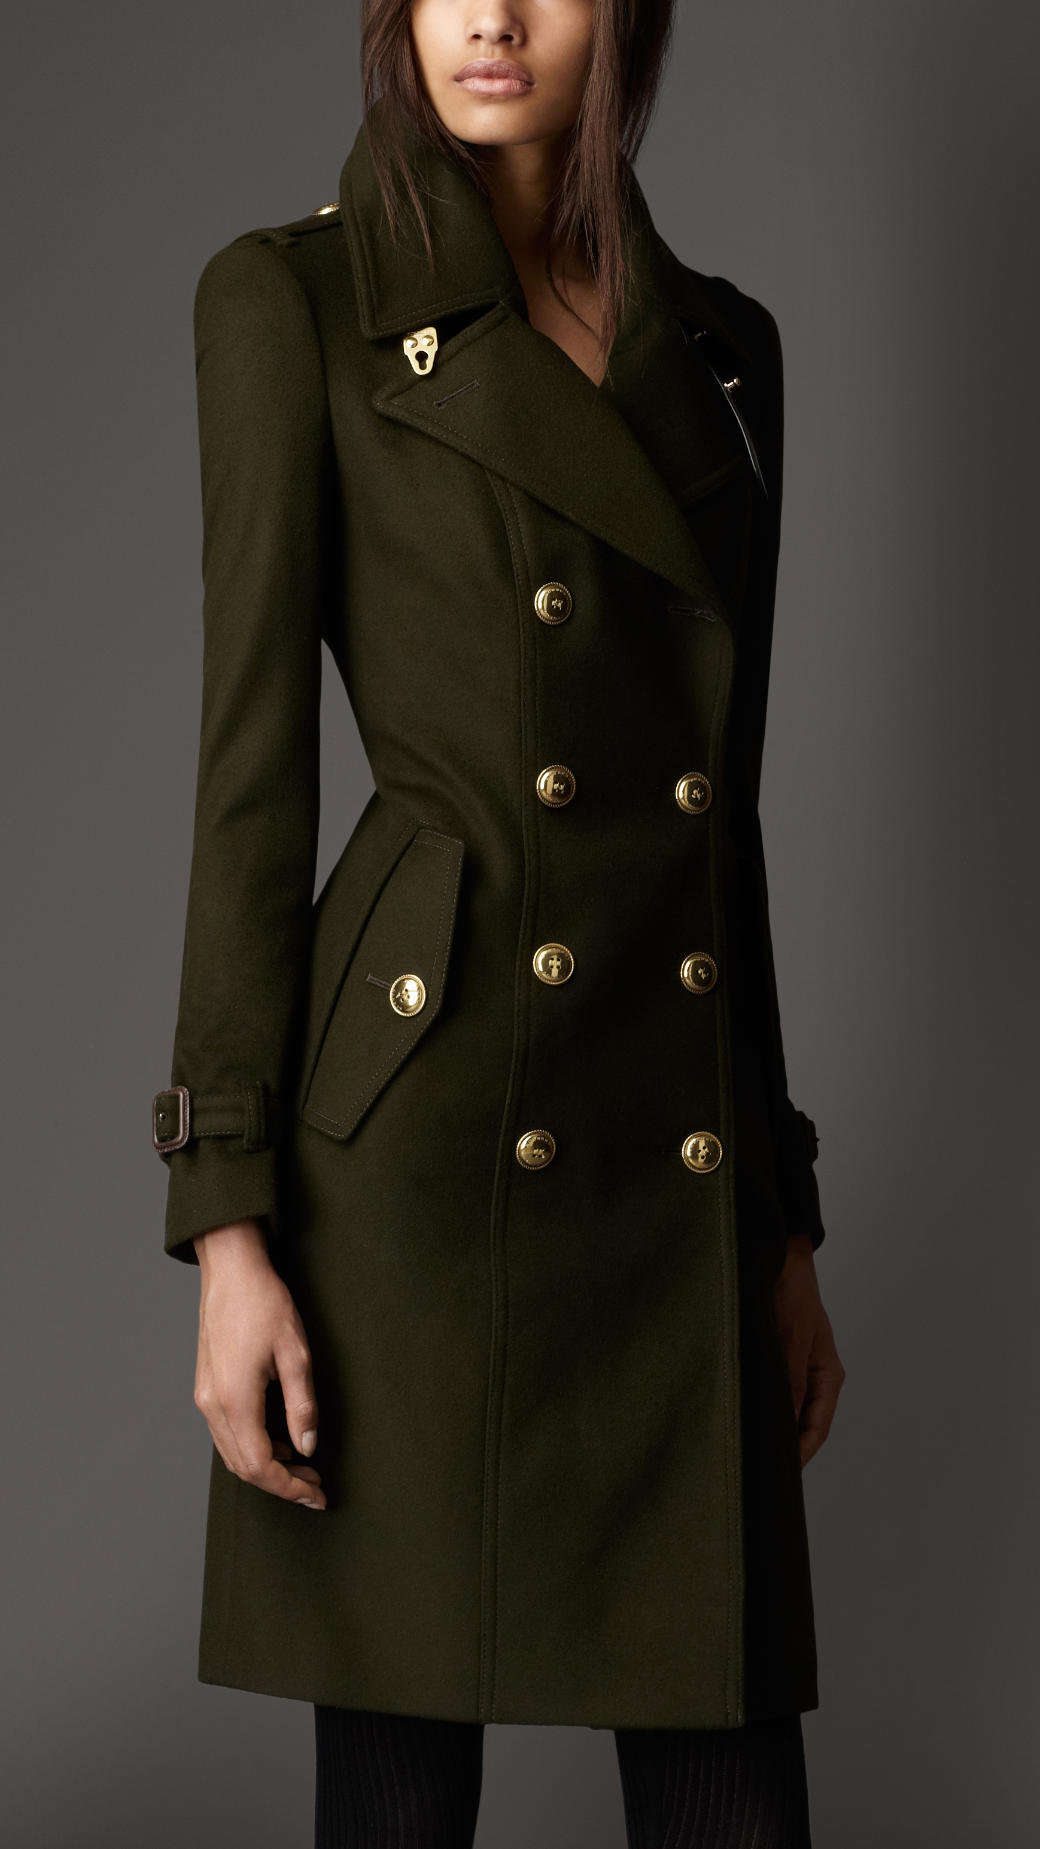 Burberry Leather Detail Wool Trench Coat in Green | Lyst